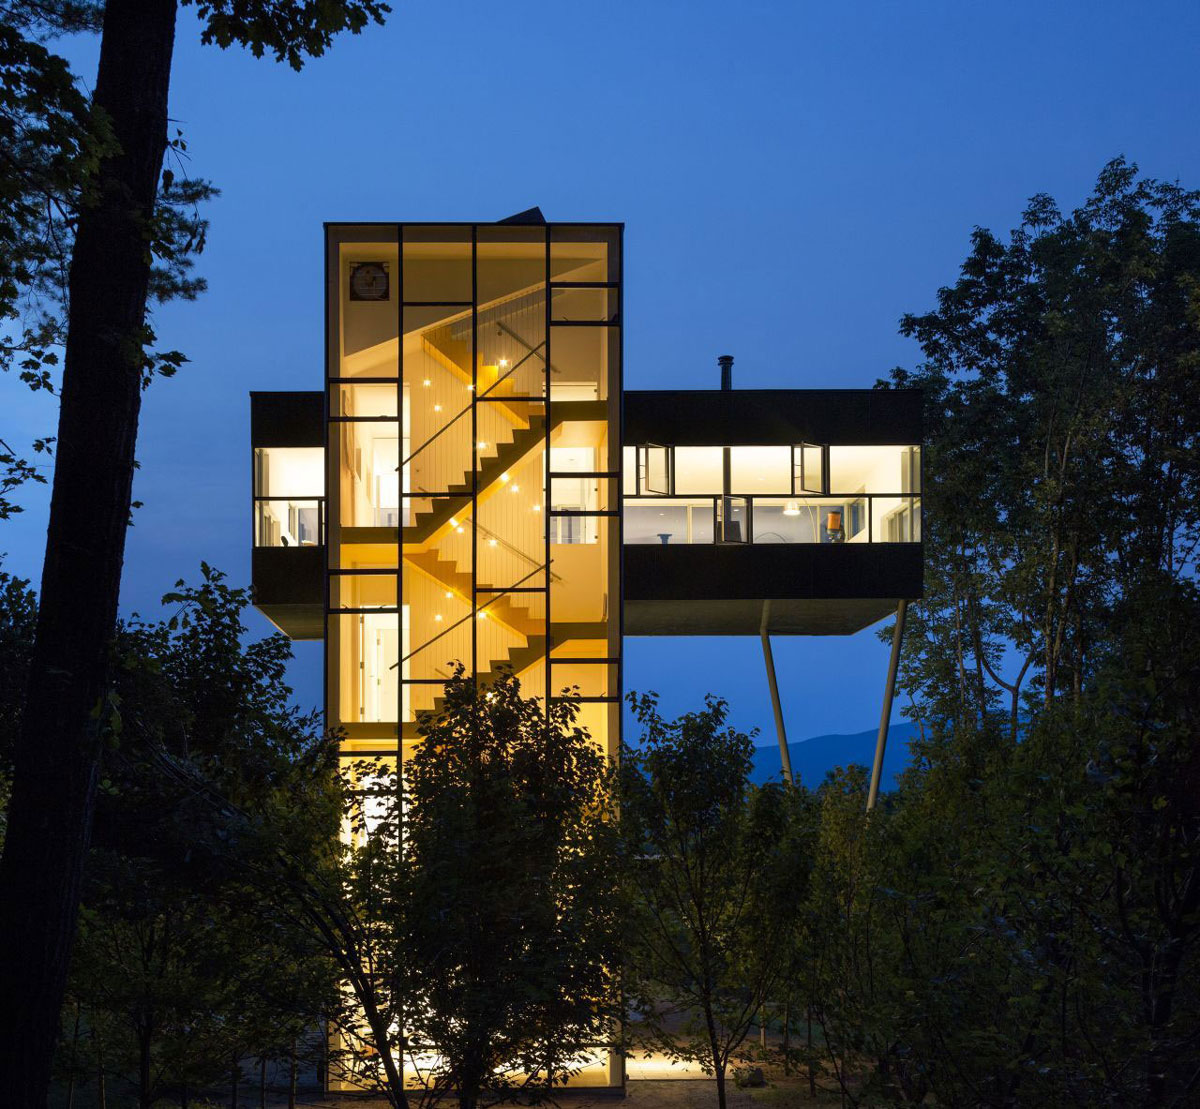 Lights, Evening, Unique Treetop Home in Upstate New York